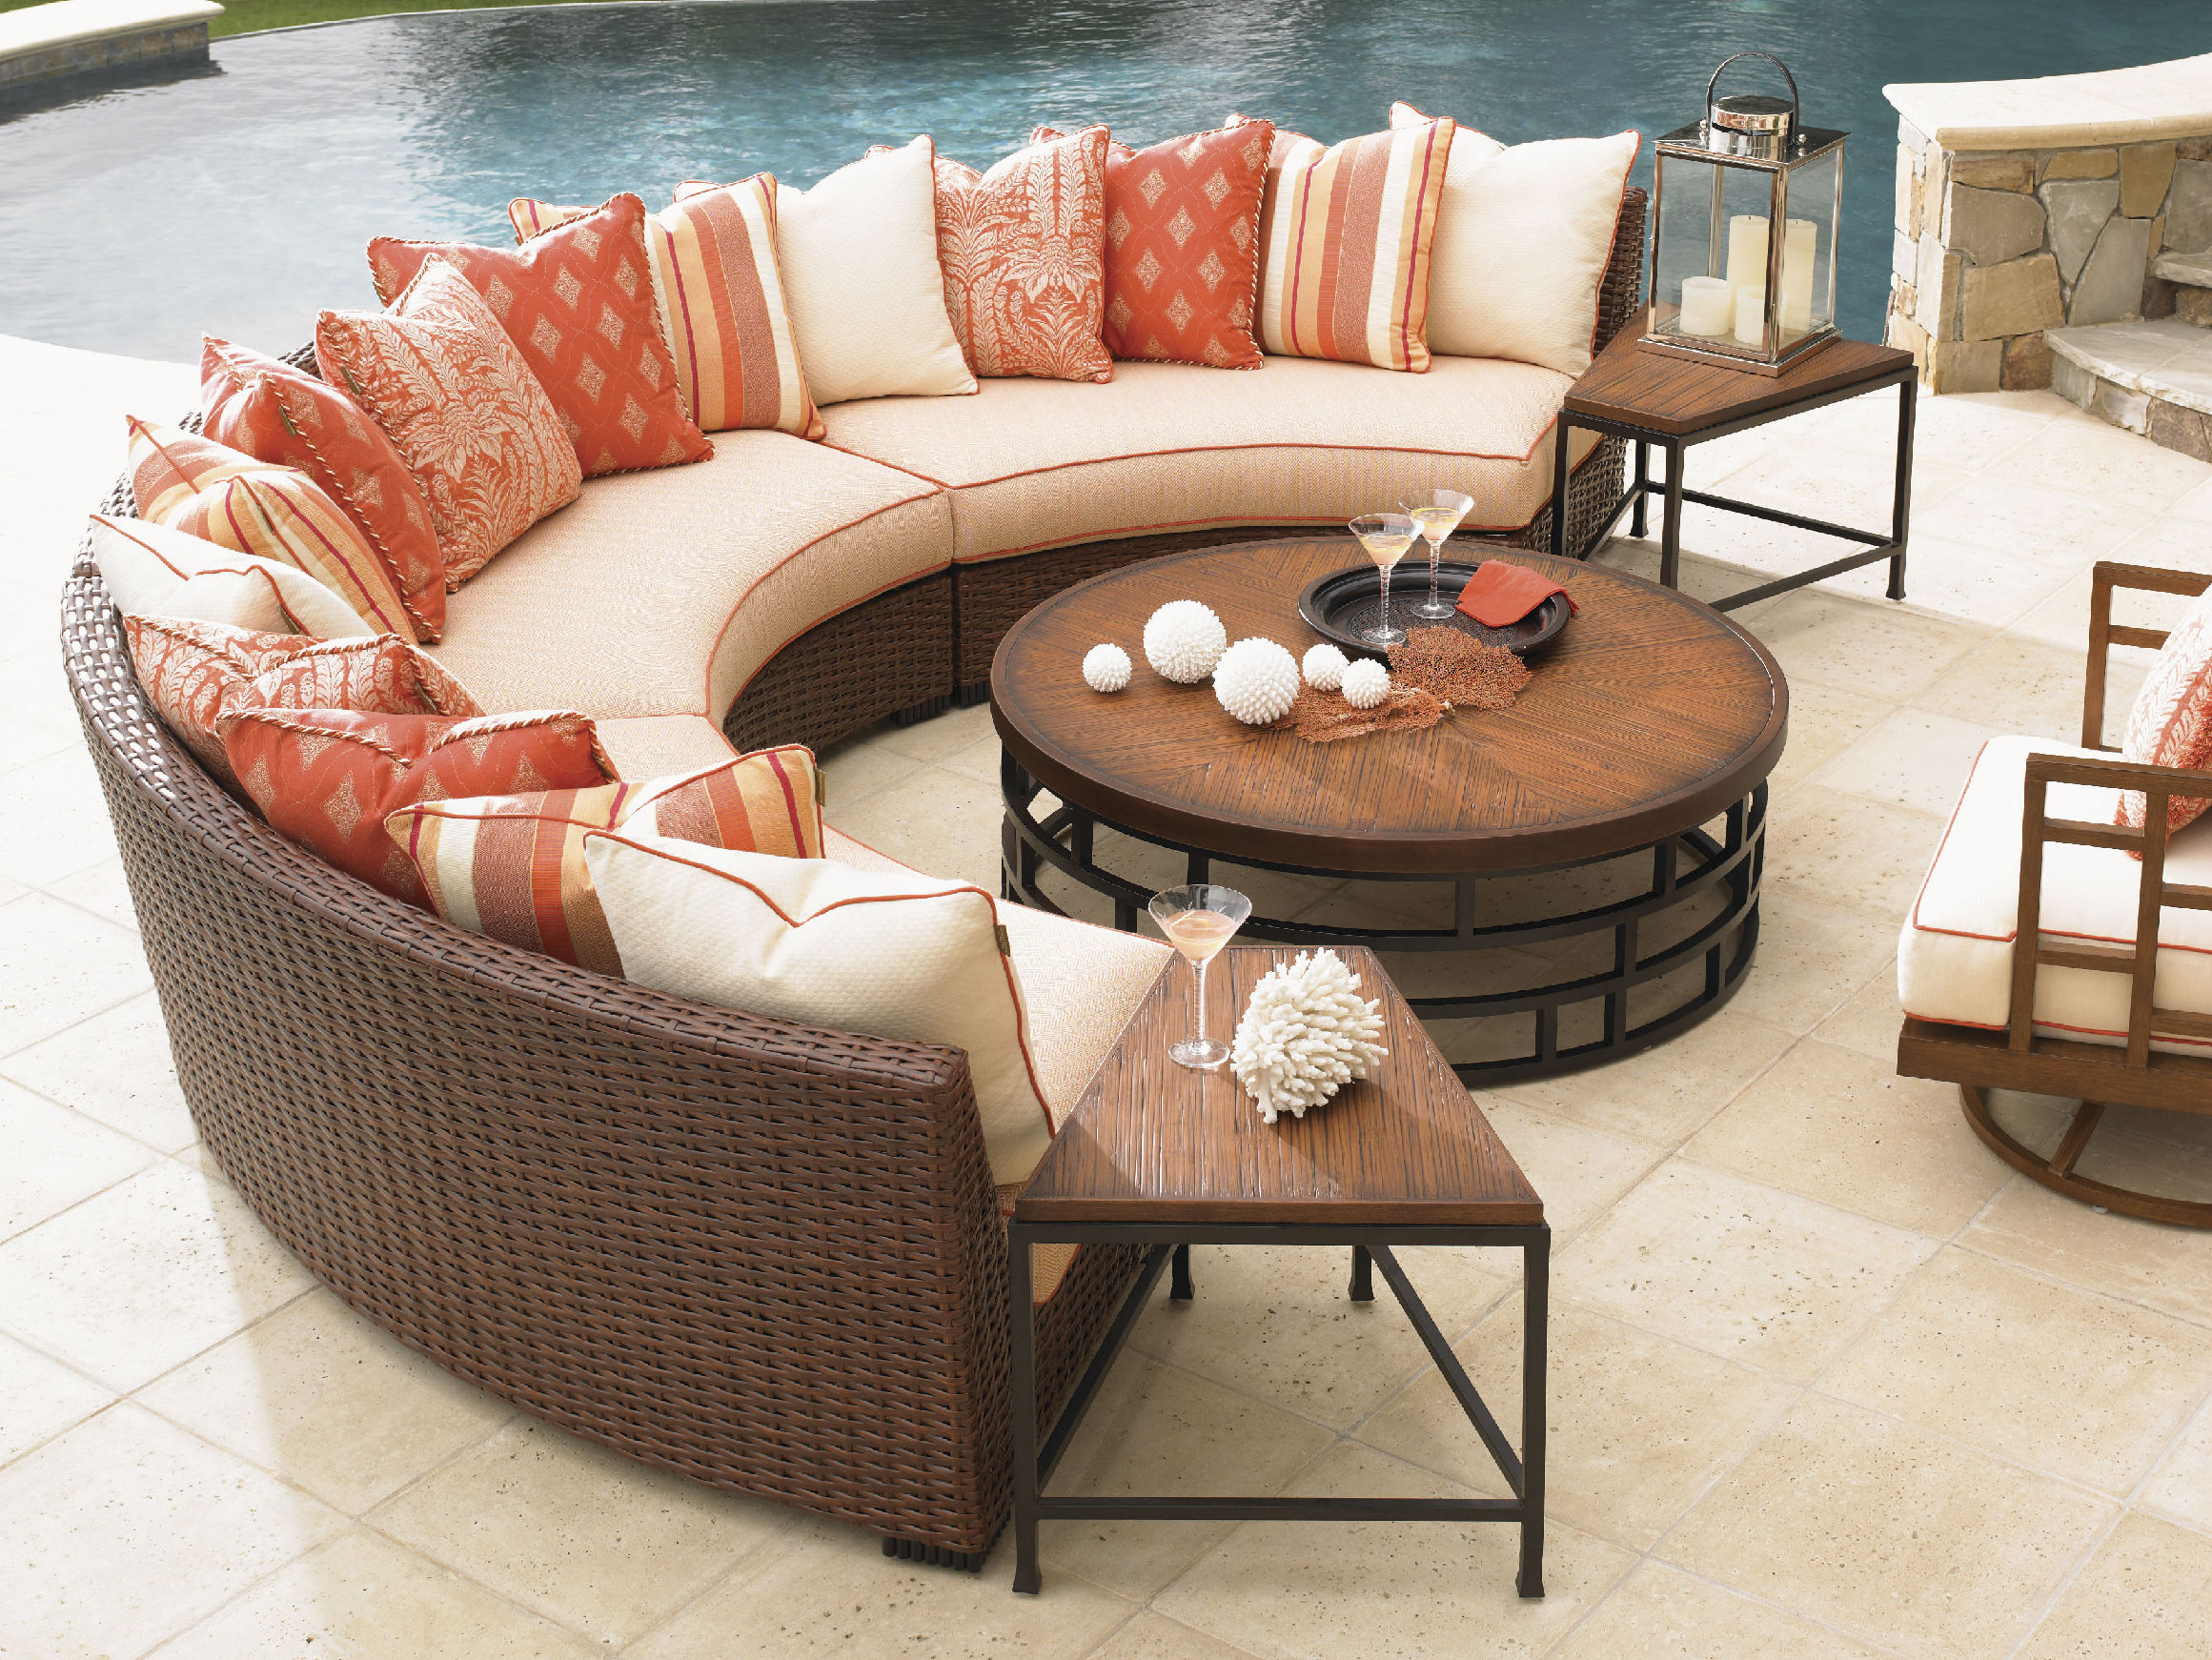 Half Round Bamboo Thomasville Outdoor Furniture Pop Colors Cushions Natural Wooden Round Table Natural Porcelaine Floor